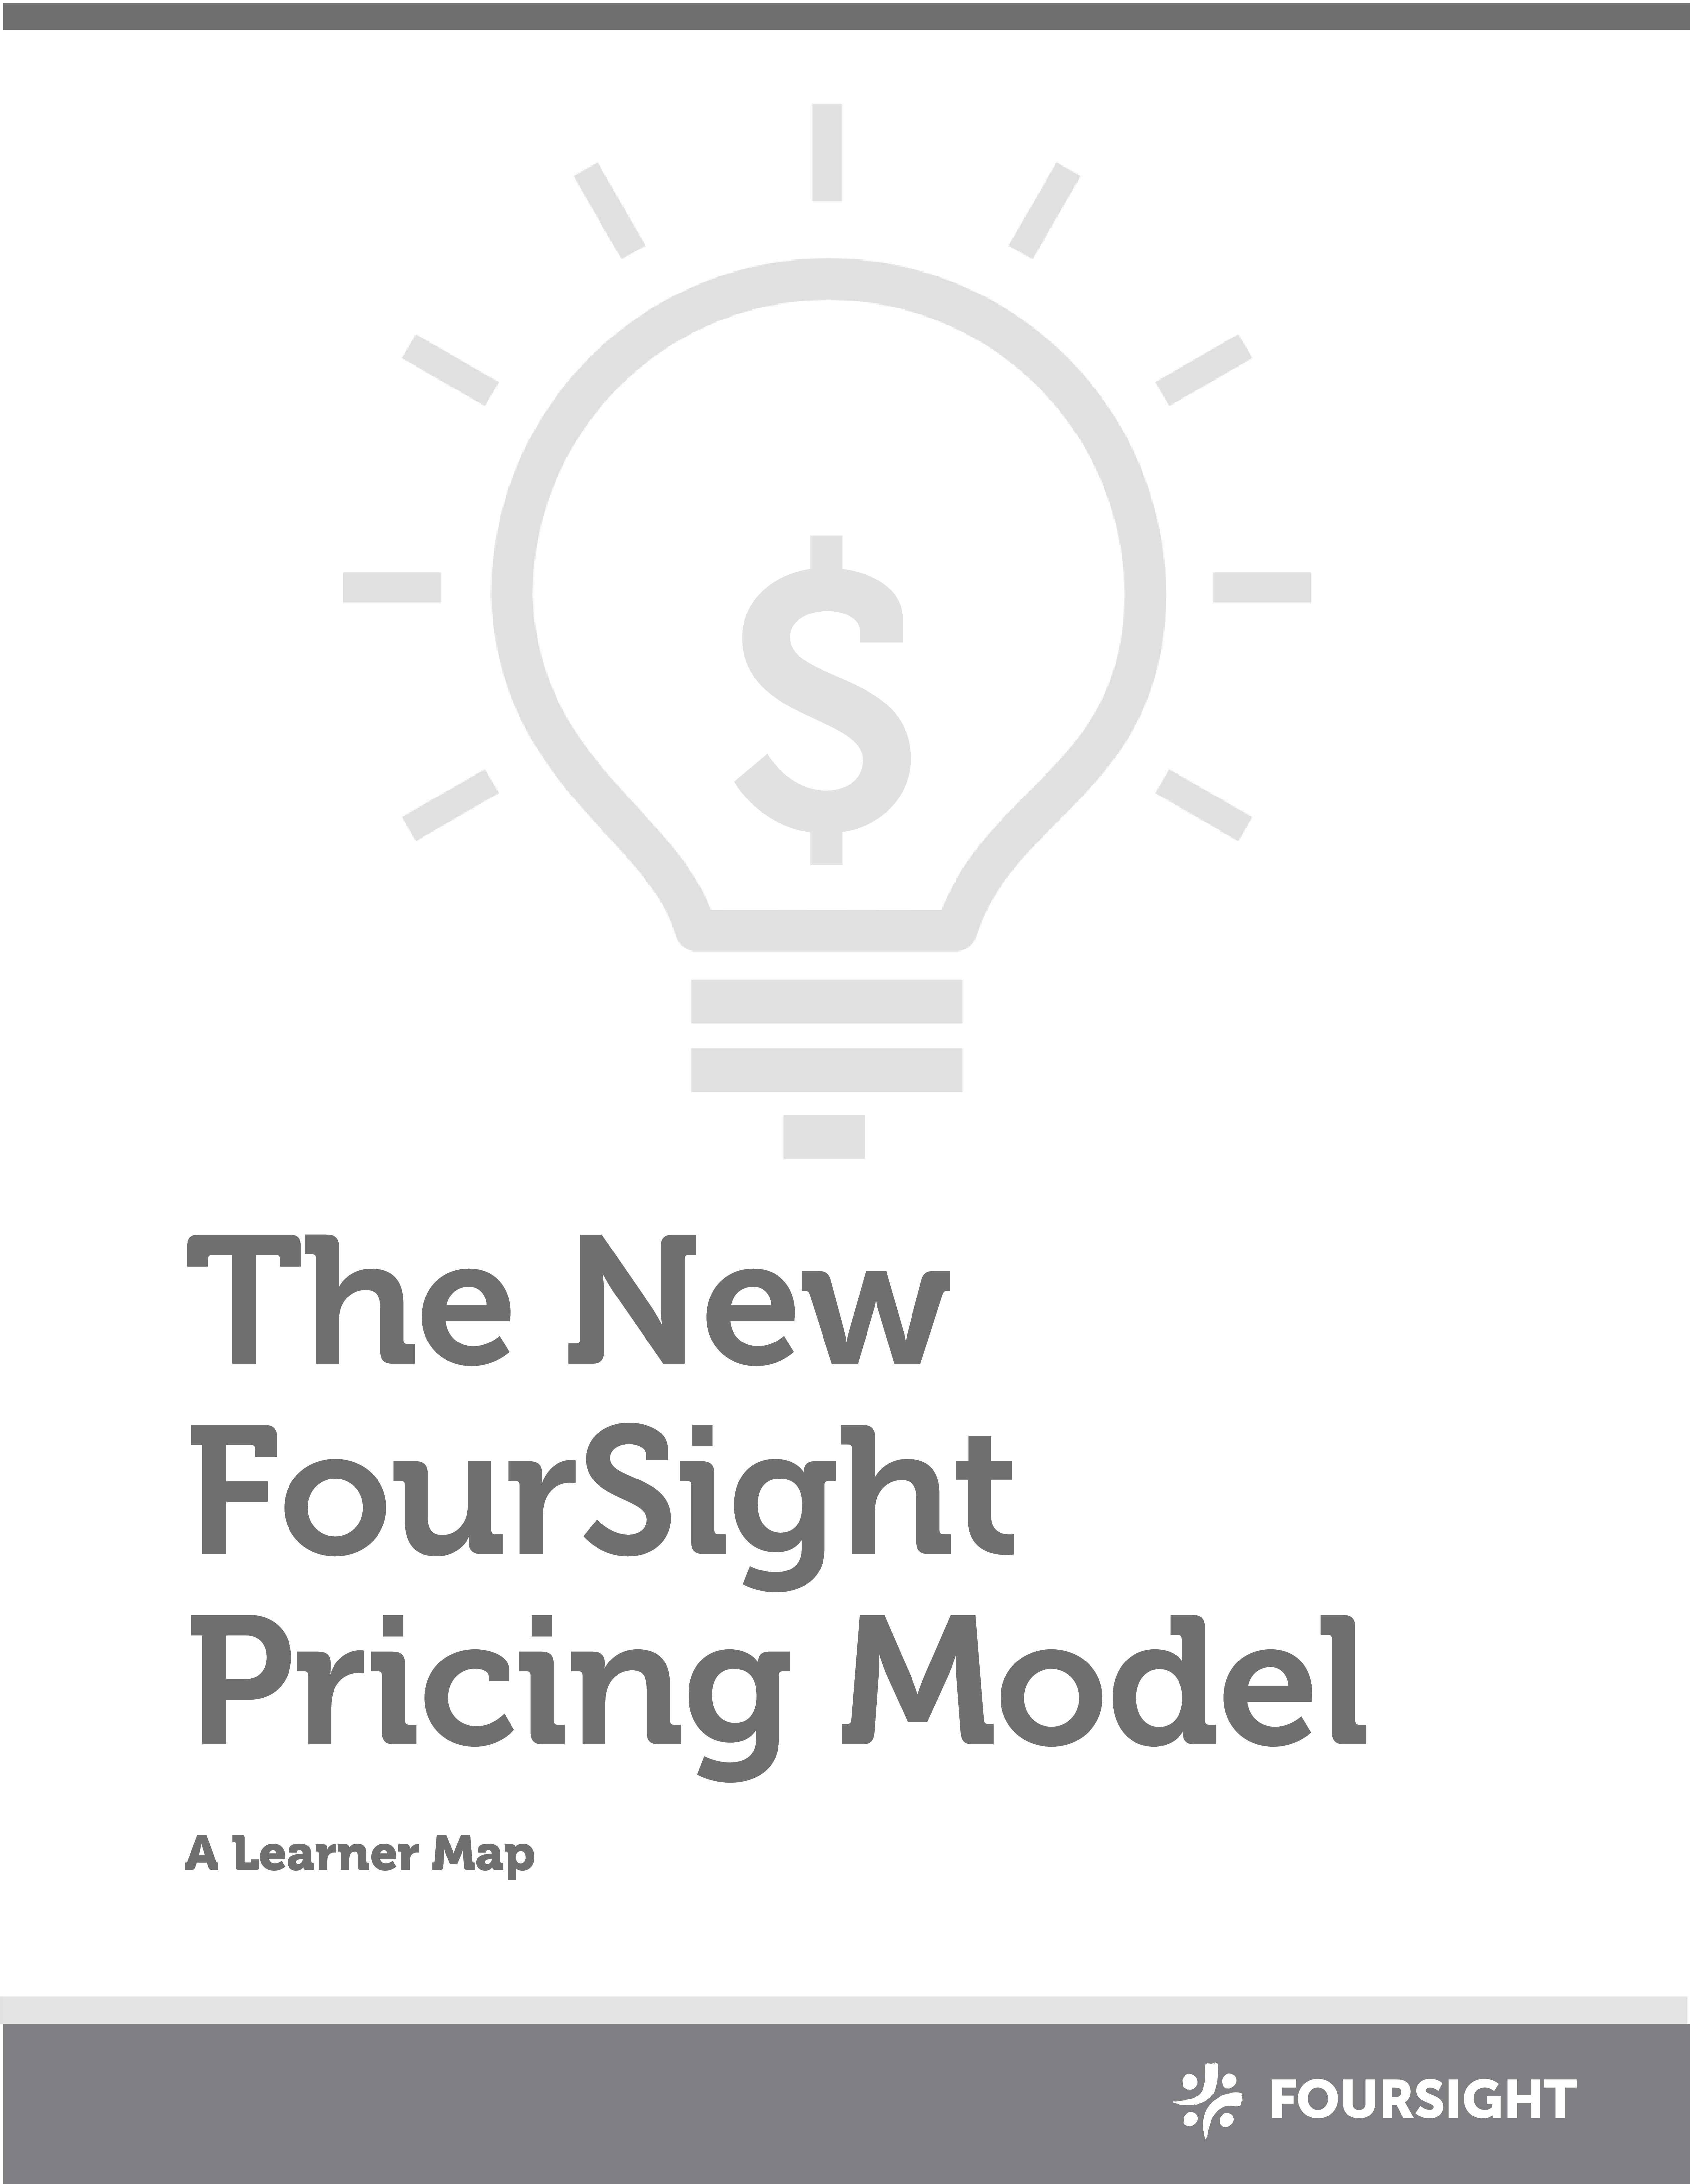 foursight-pricing-model